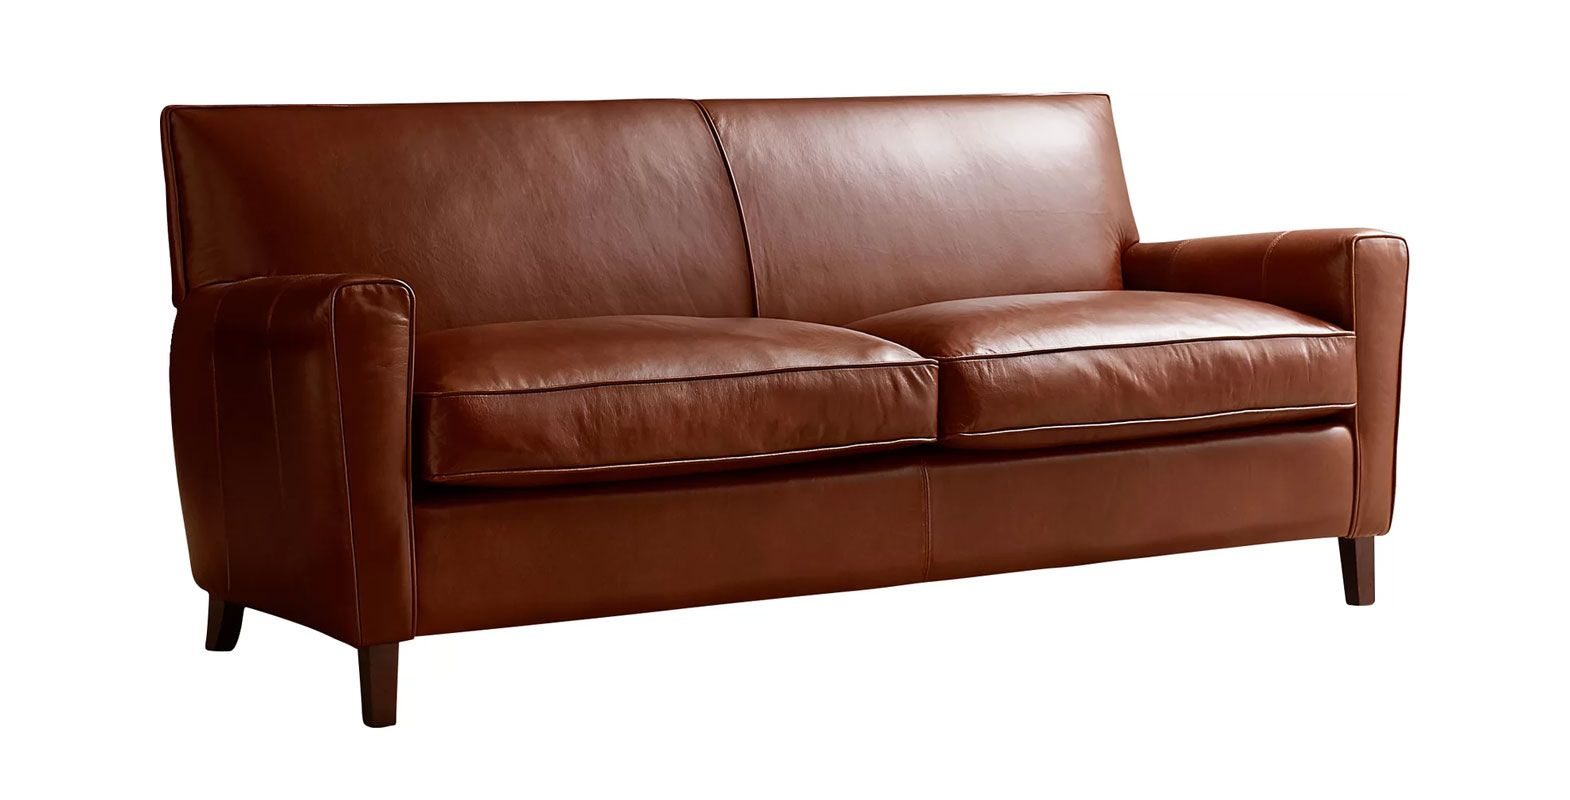 7 Affordable Leather Sofas Most With Free Shipping In 2020